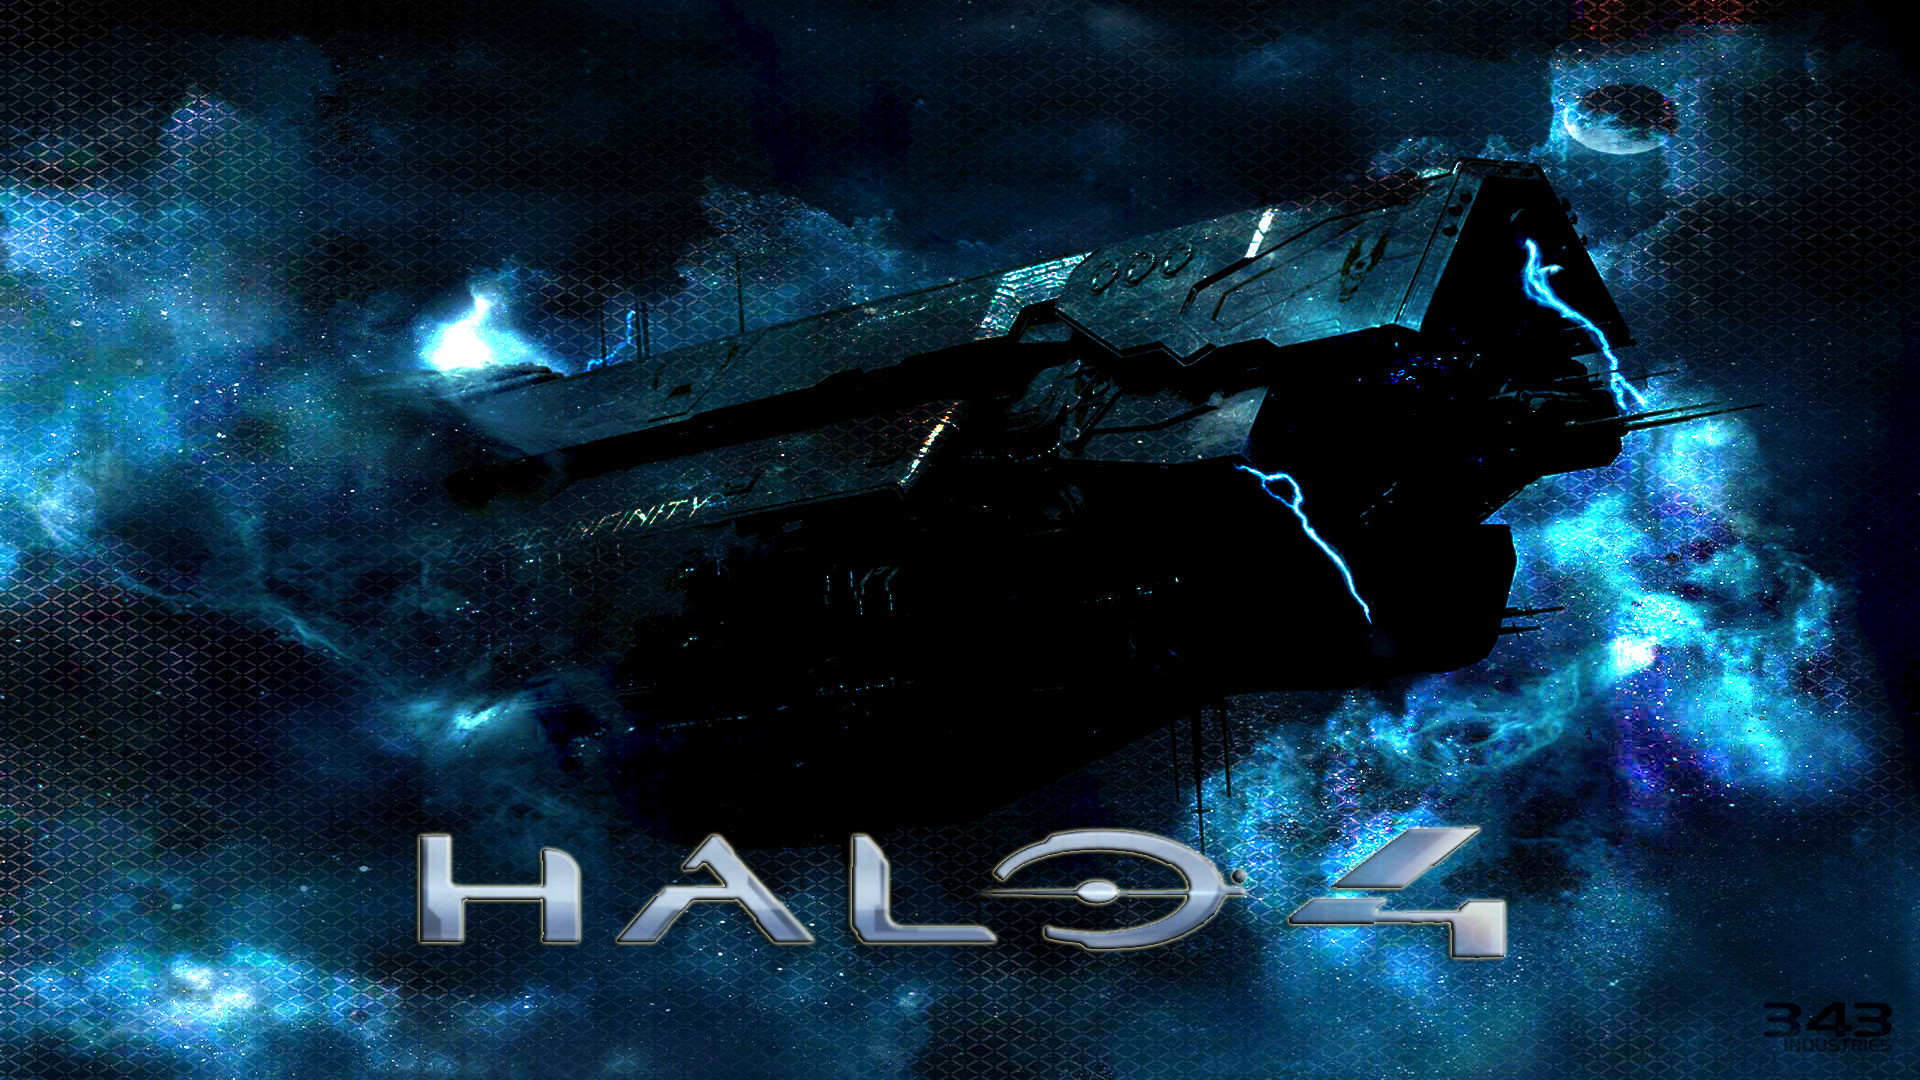 1920x1080 Halo 4 Live Wallpaper